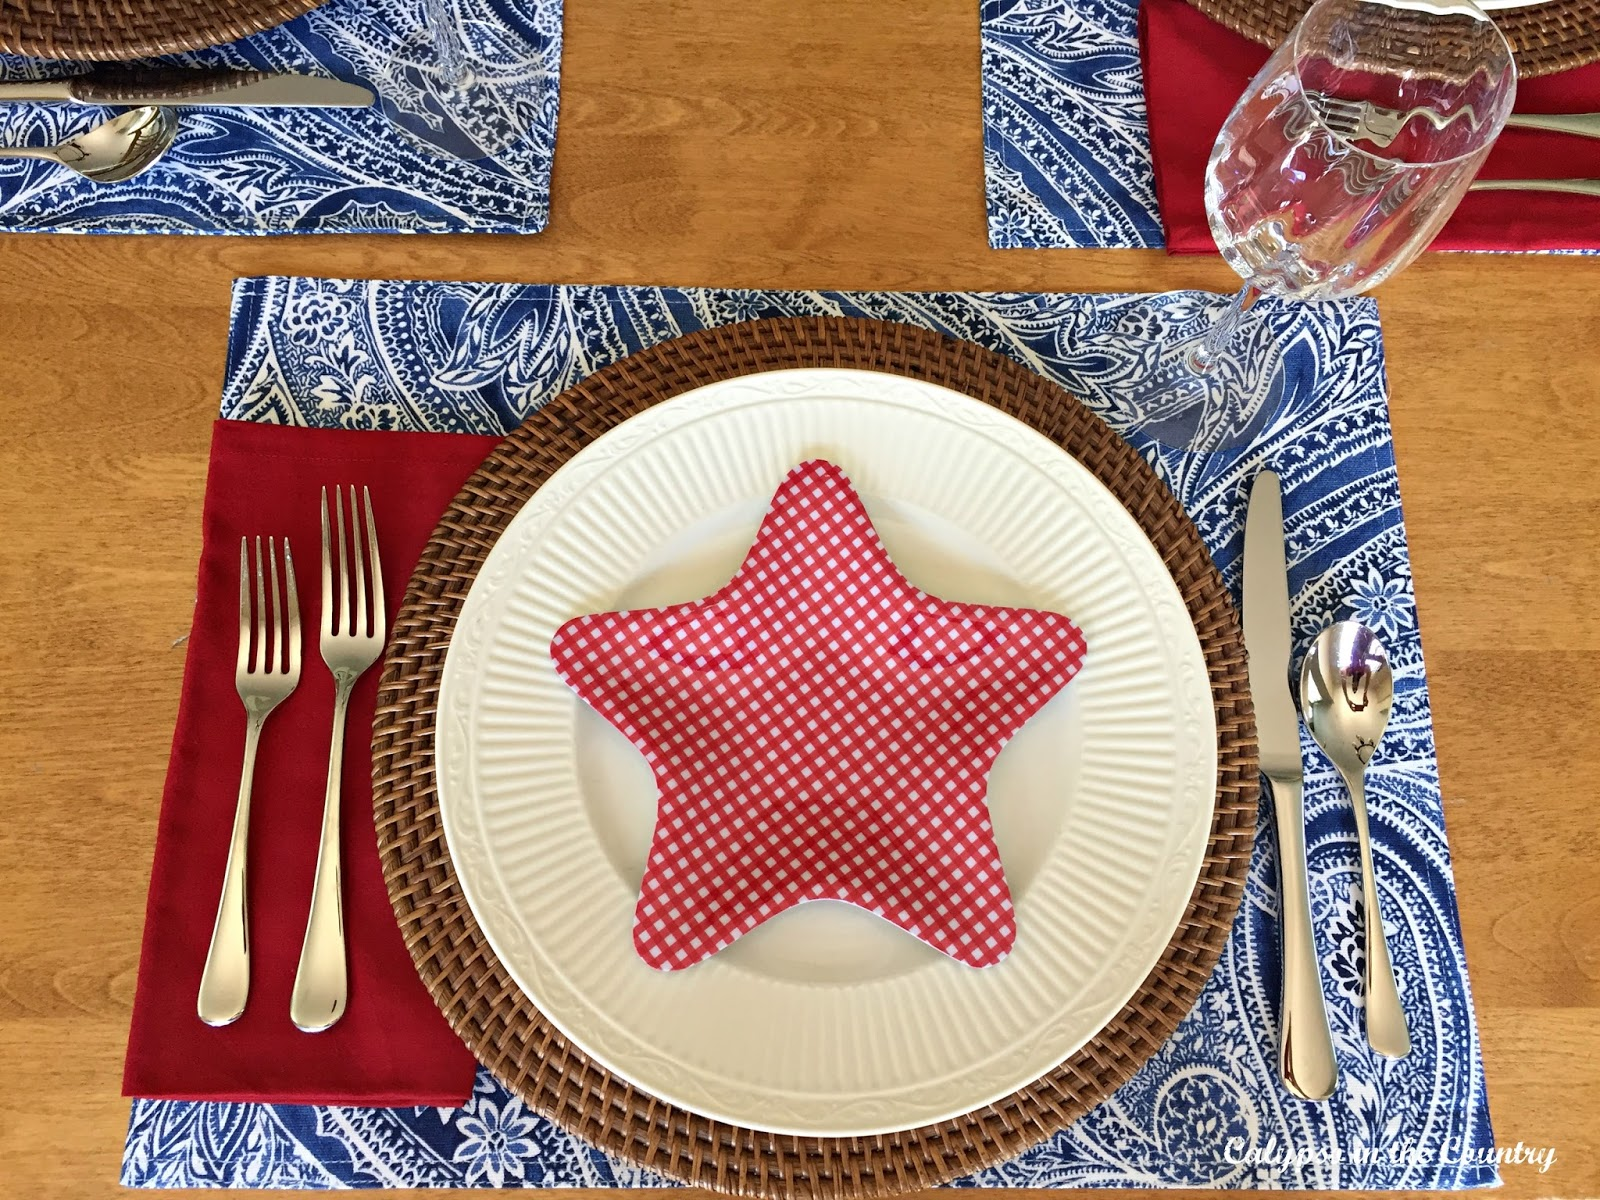 Patriotic Table Setting with Star Plate